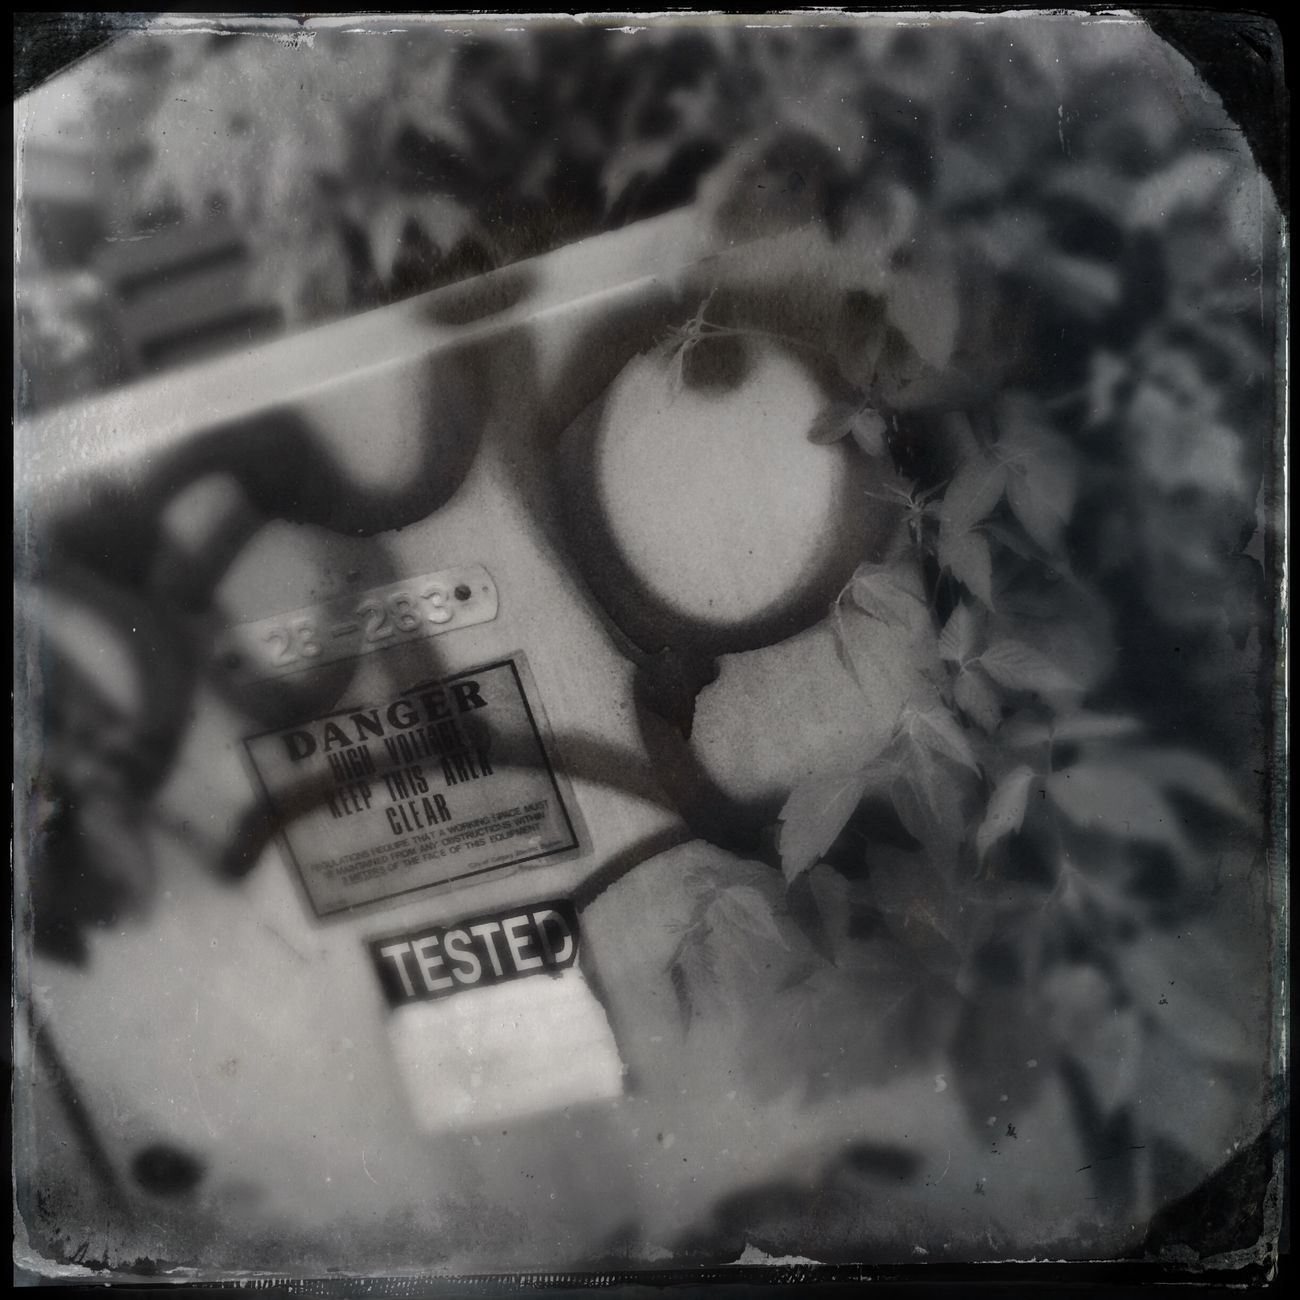 Danger graffiti. Project 365 Photography Iphone 5 Hipstamatic Tintype